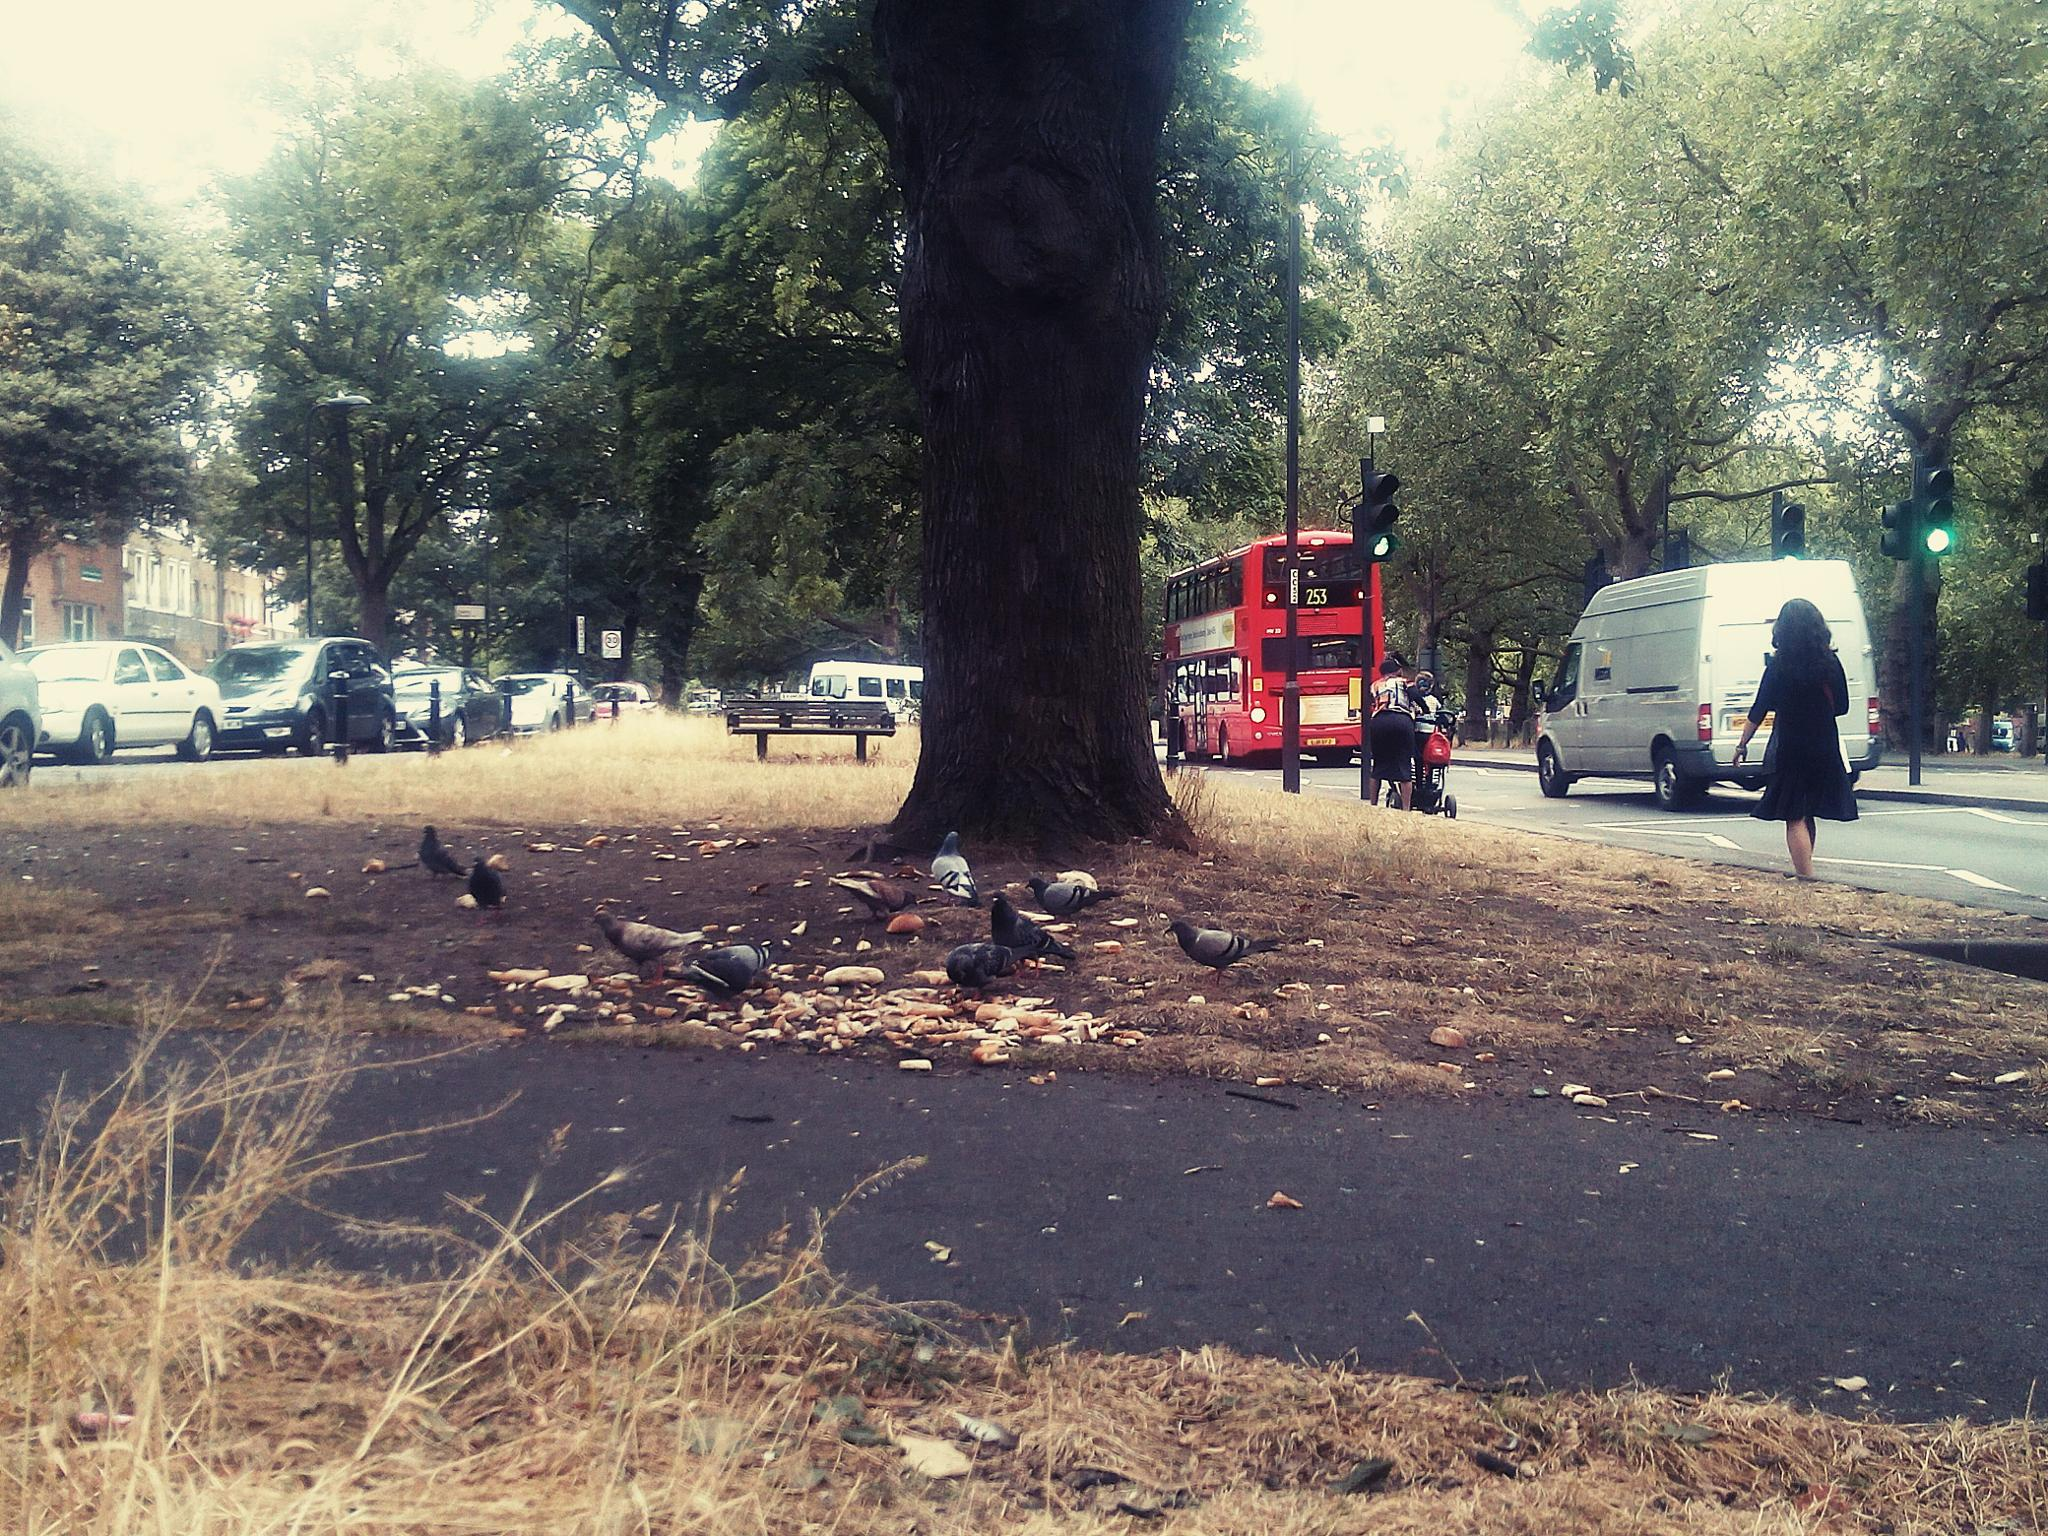 English Breakfast - Typical morning in London by Sima Janan